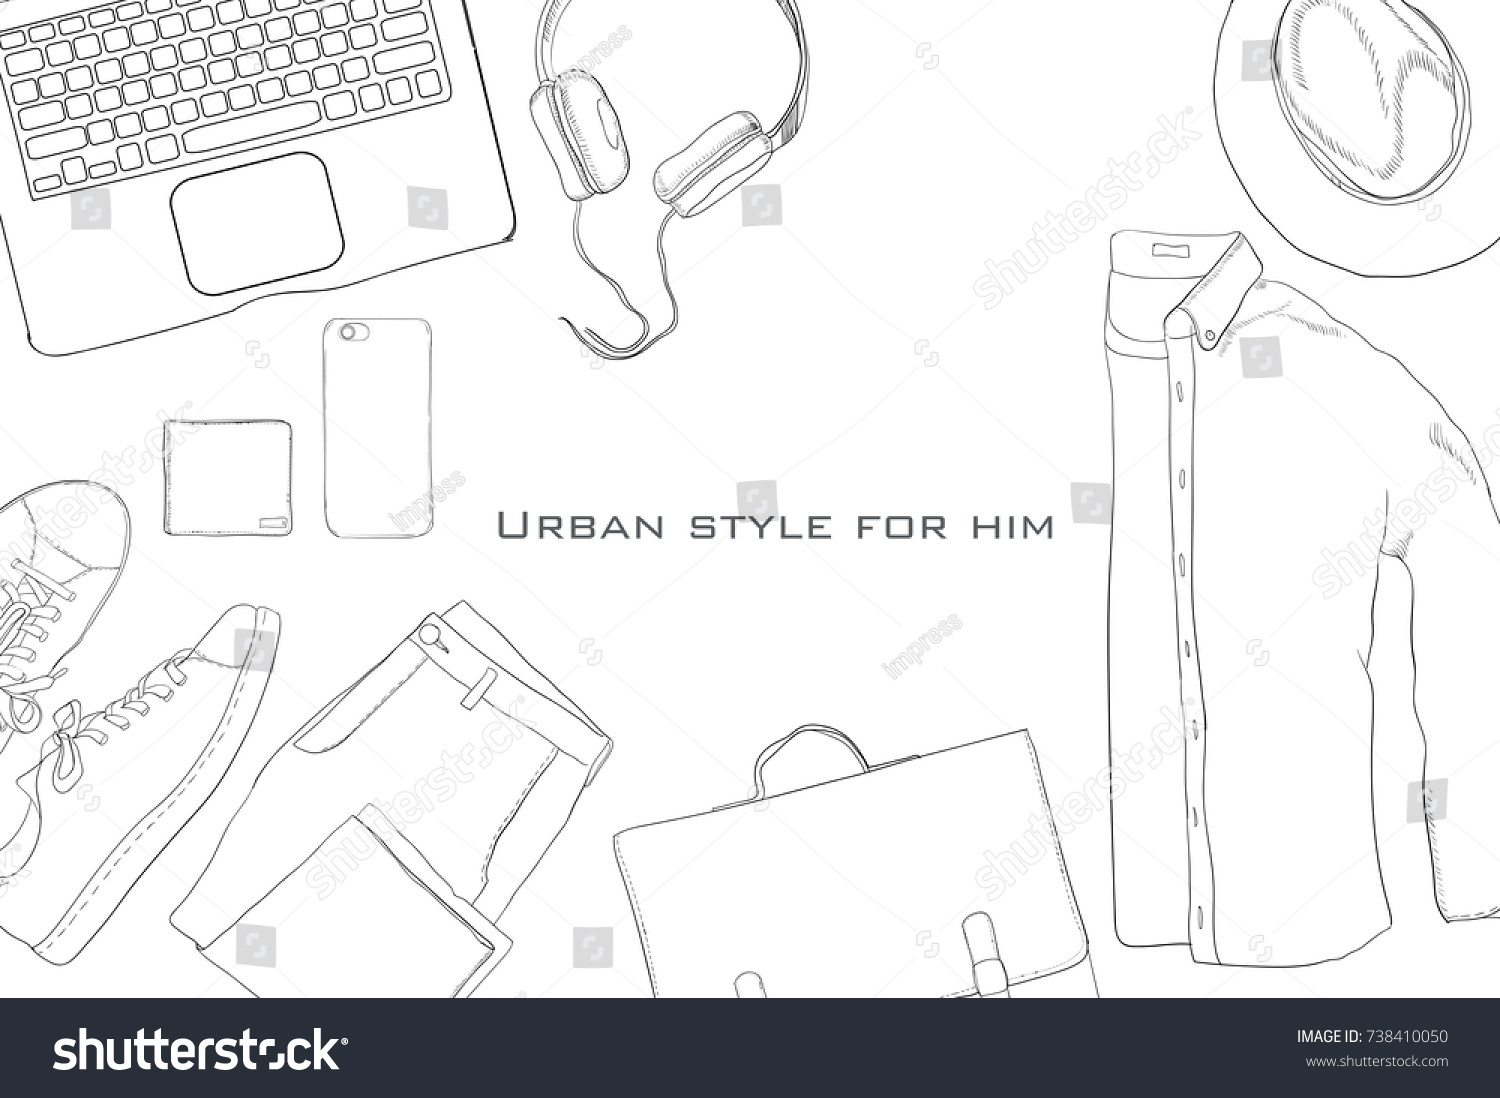 Vector Illustration Hand Drawn Doodle Flat Stock Royalty How To Diagram Of Tie Shoes Lay Coordination Folded Shirt